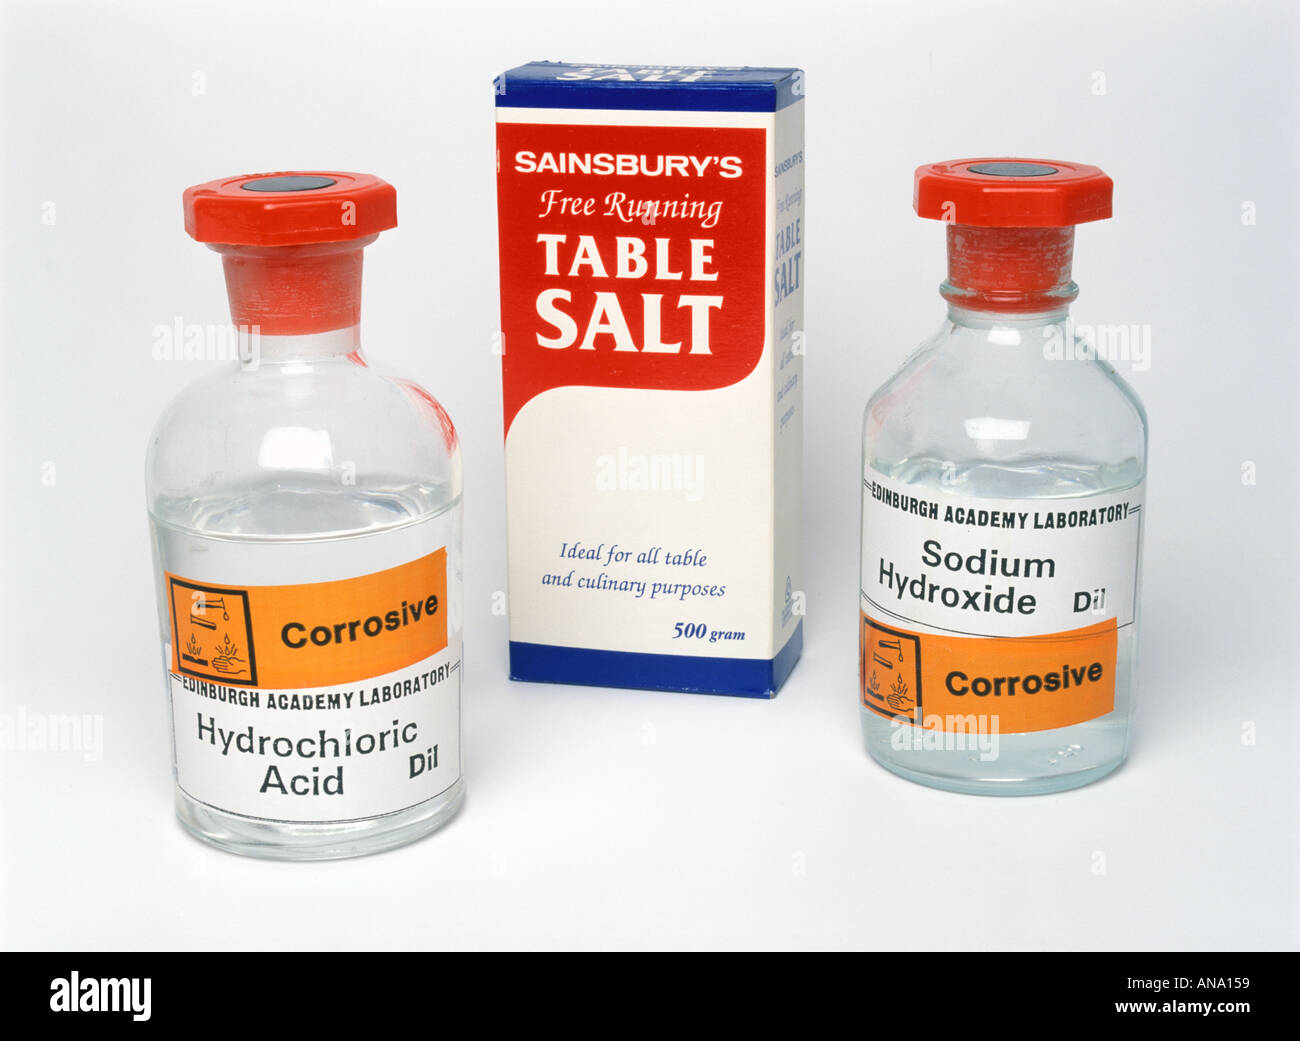 Hydrochloric Acid Stock Photos & Hydrochloric Acid Stock